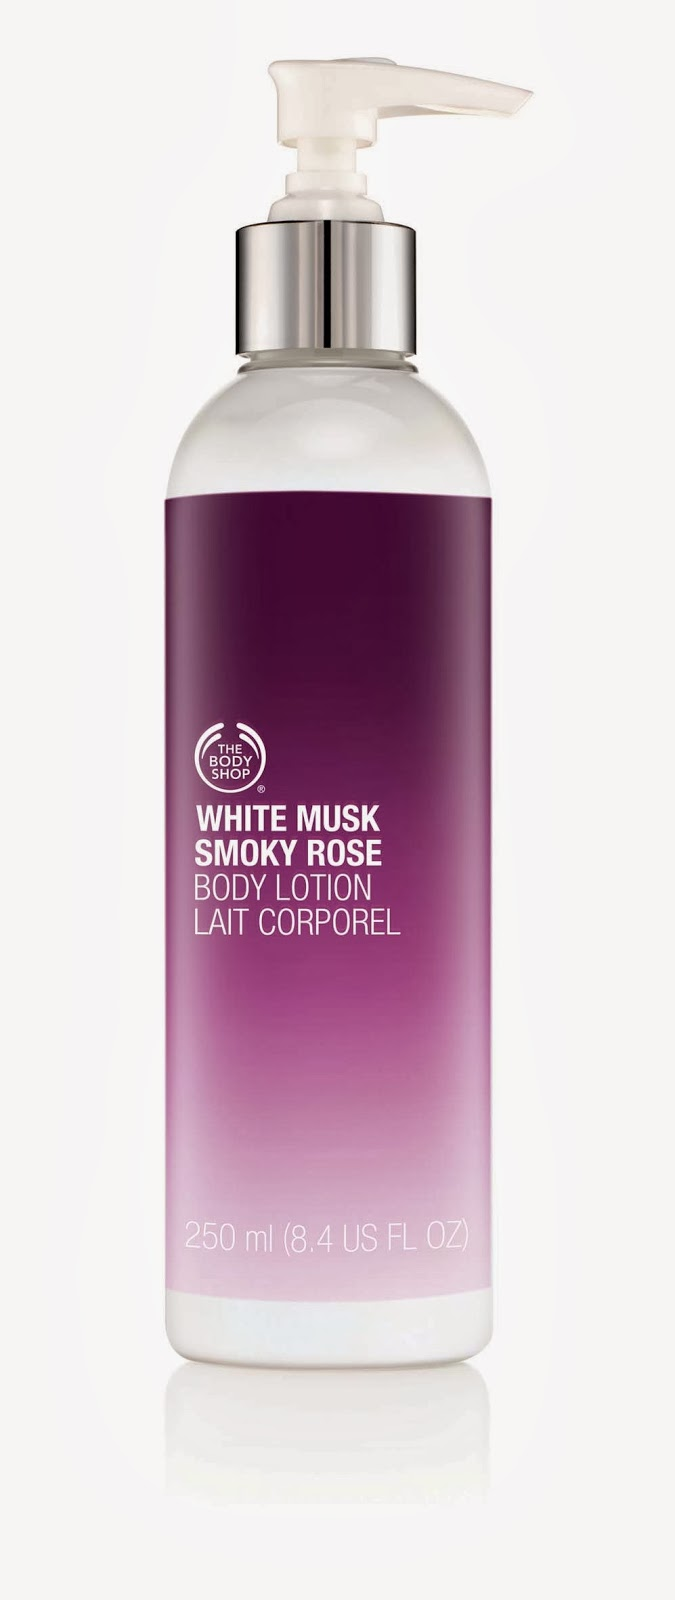 BODY LOTION WHITE MUSK SMOKY ROSE 250 ML – 1295